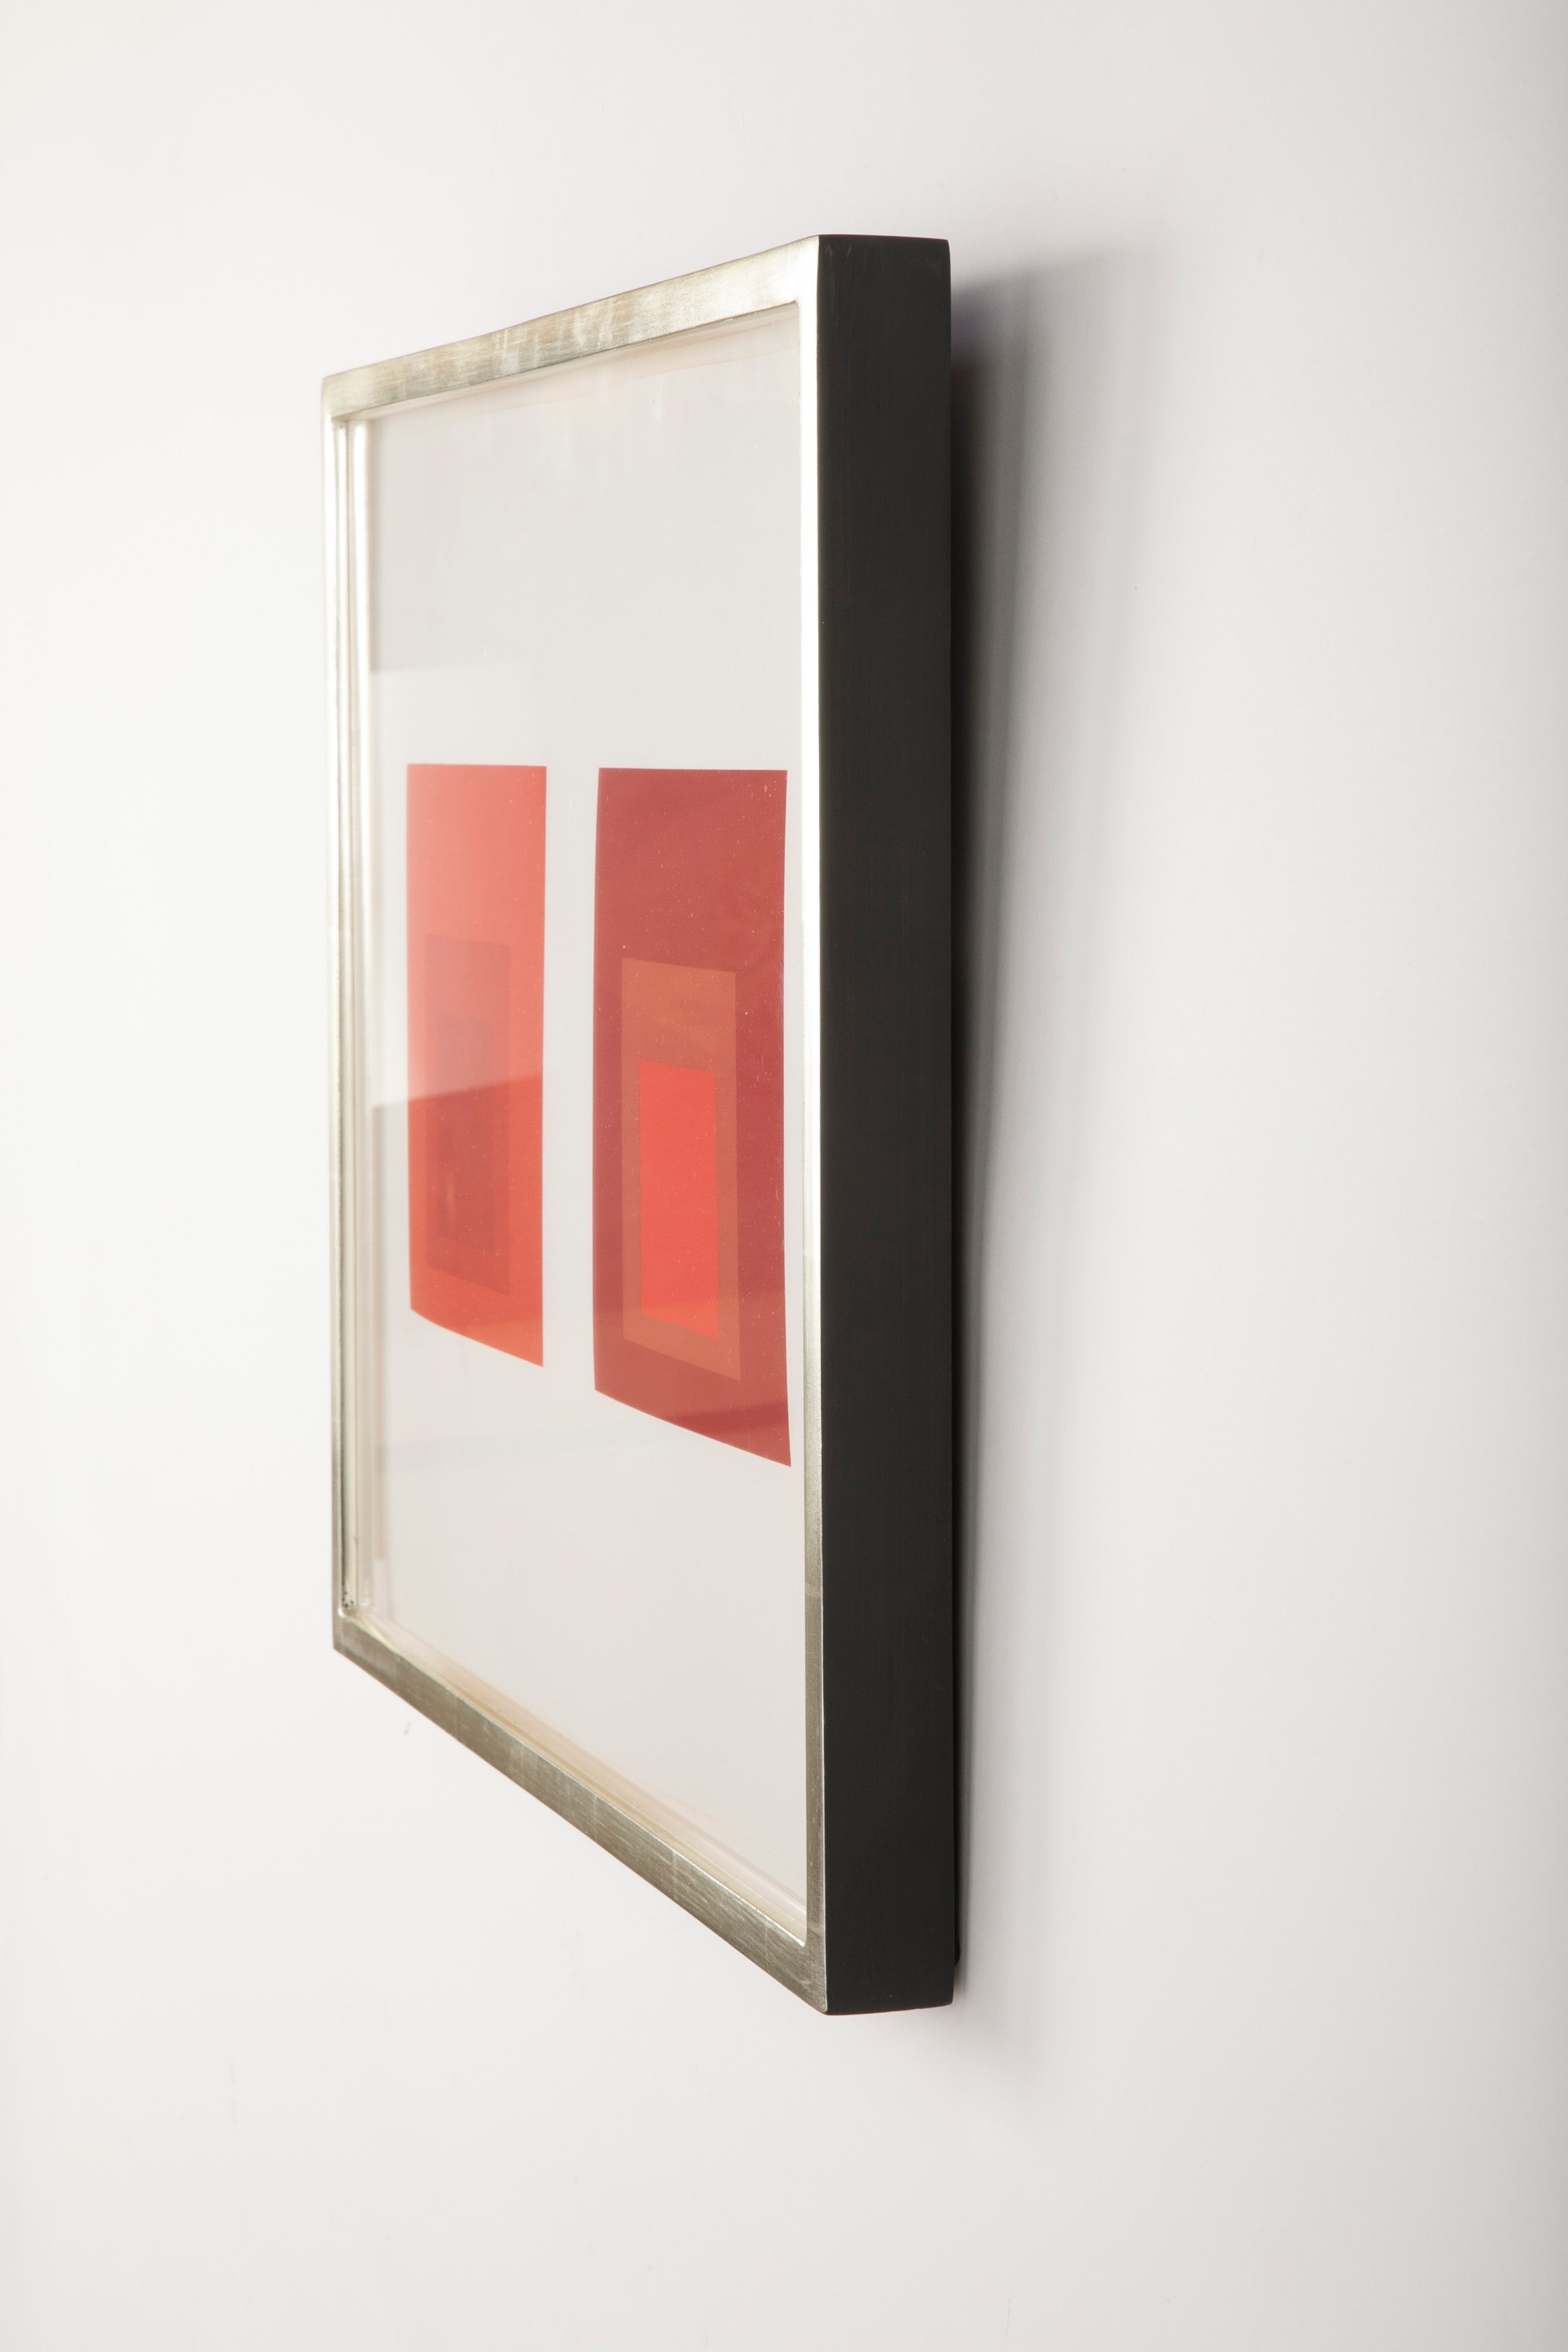 Joseph Albers Homage to the Square in Red.